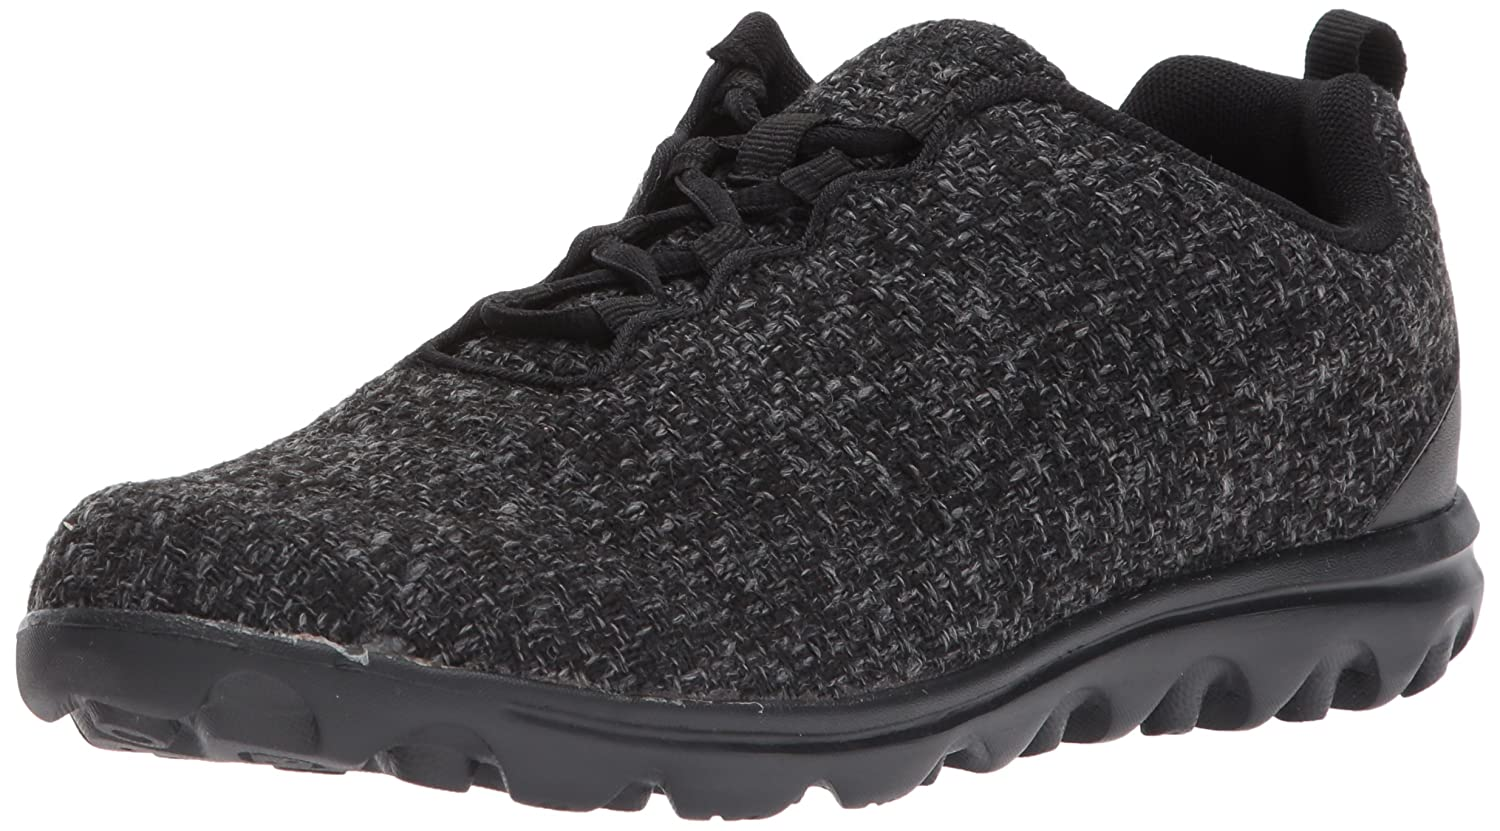 Propet Women's TravelActiv Woven Walking Shoe B01N2OFOM7 7 B(M) US|Dark Grey